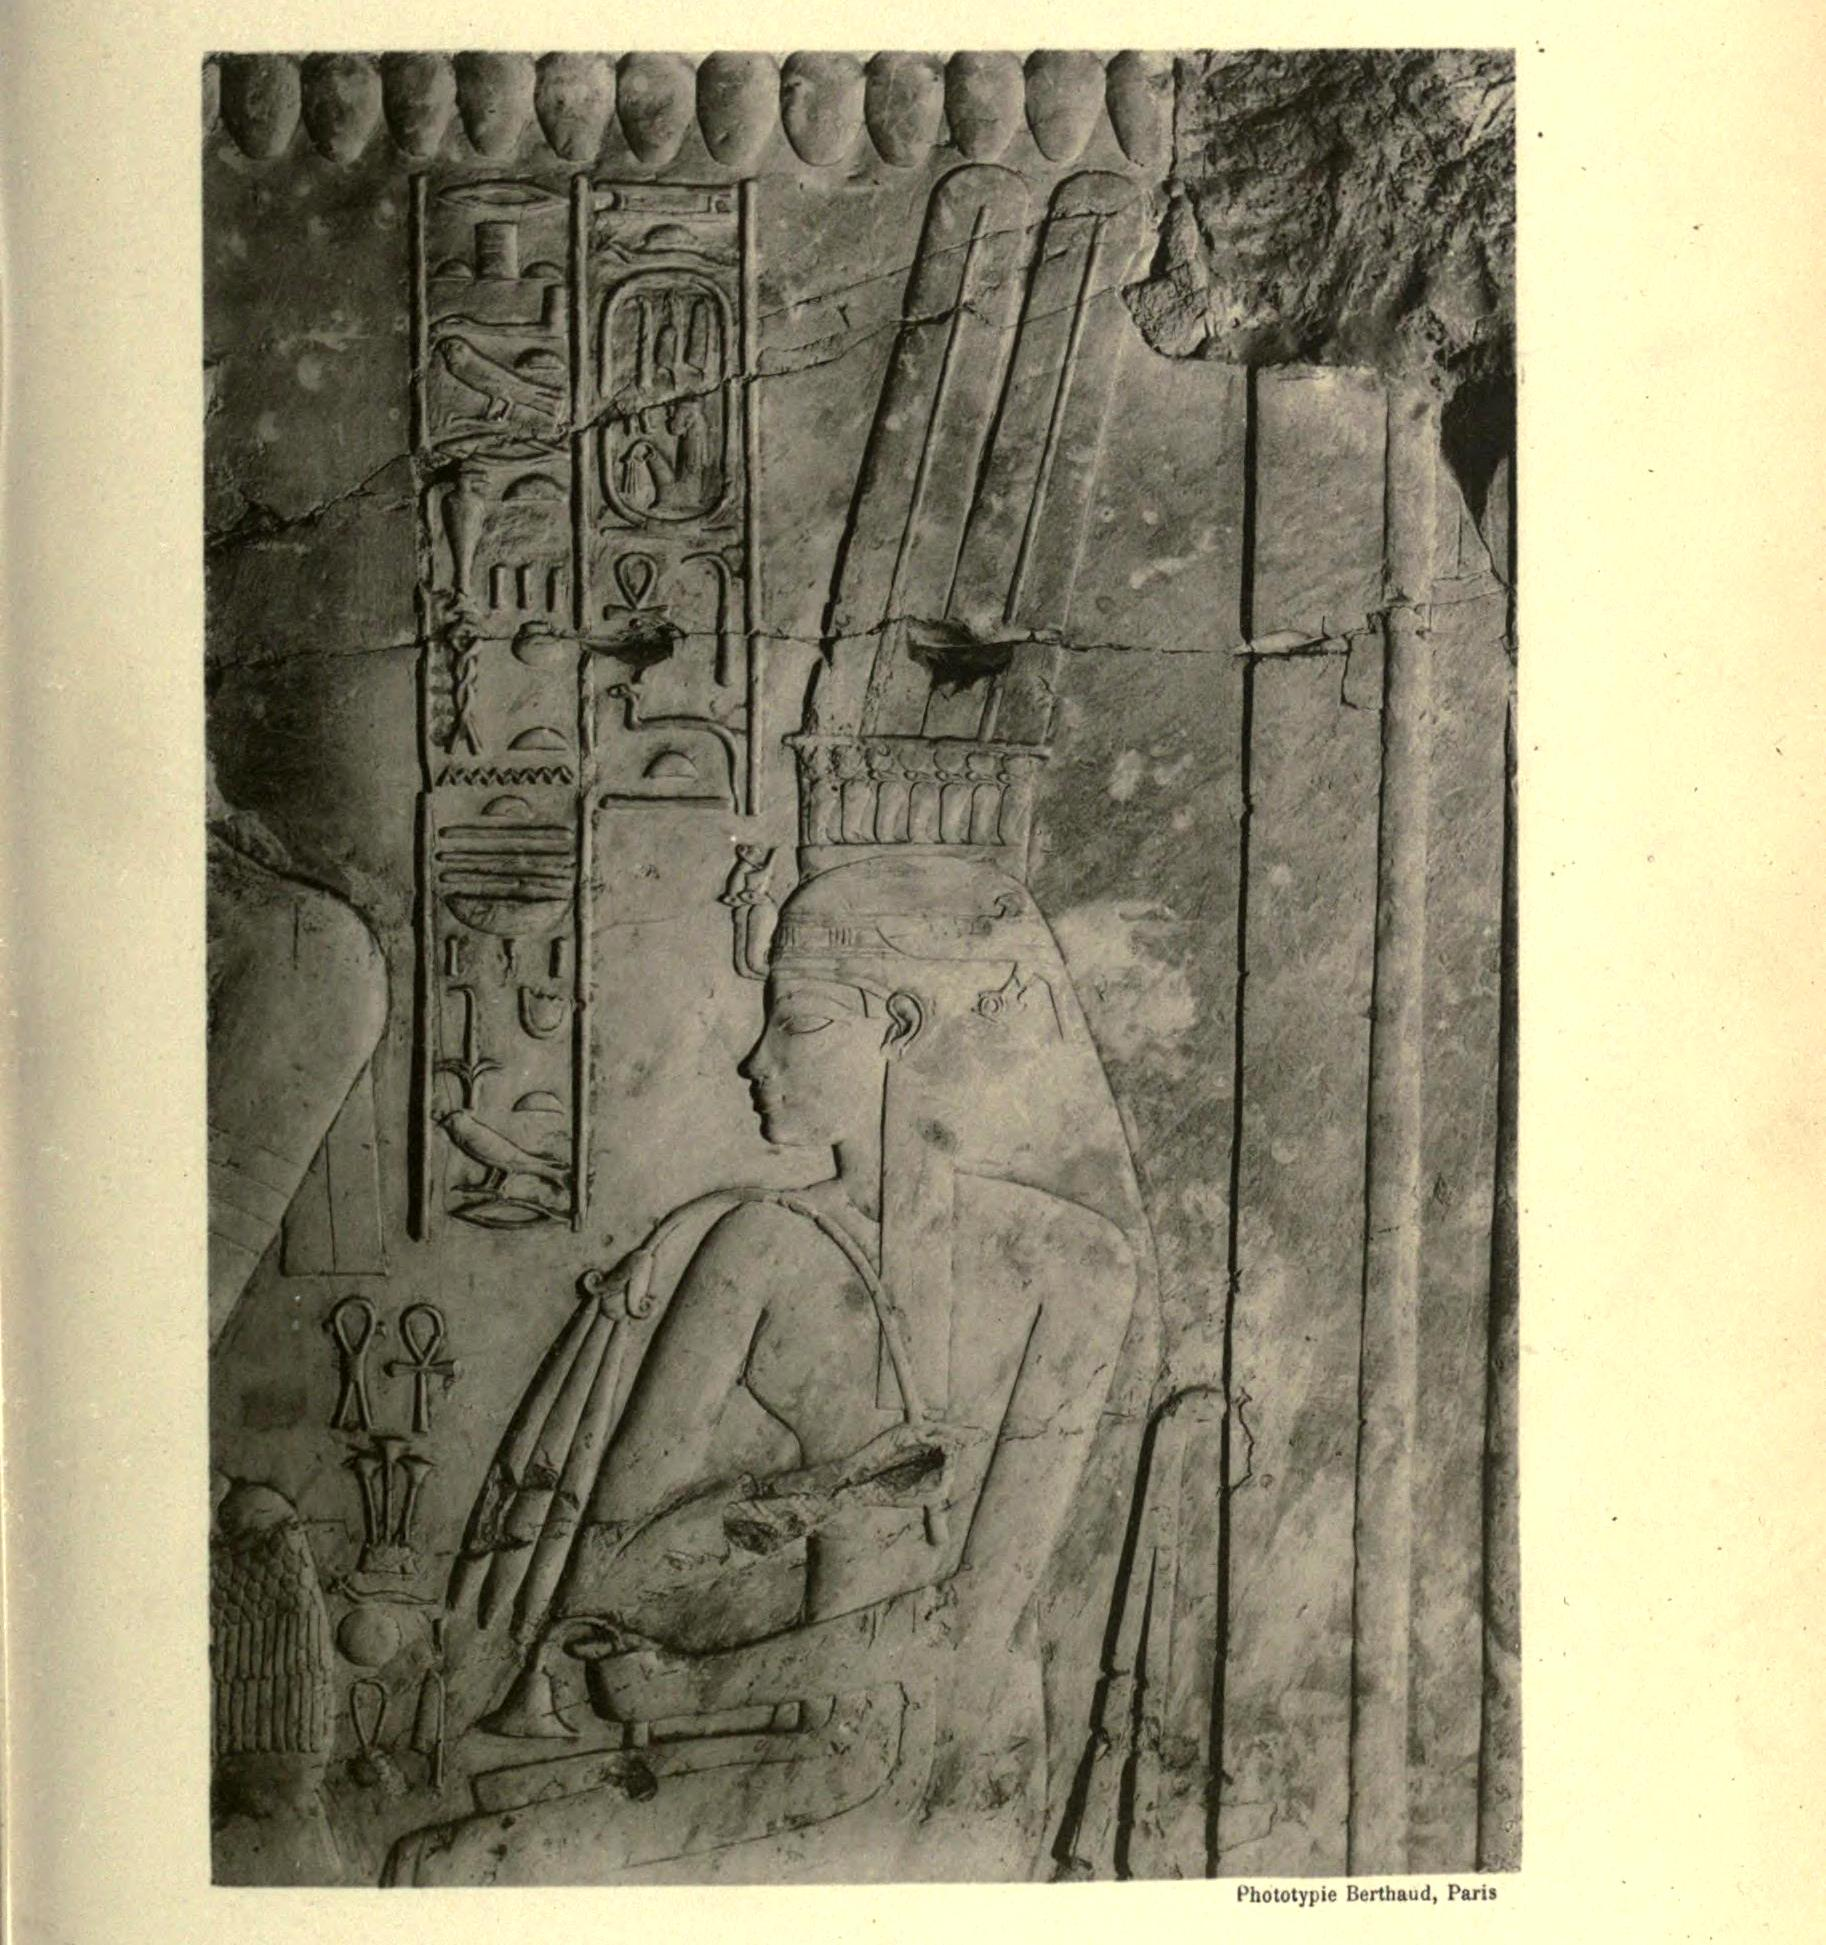 The 1903 image of the full relief featuring Tiye in the tomb of Userhat (TT47).